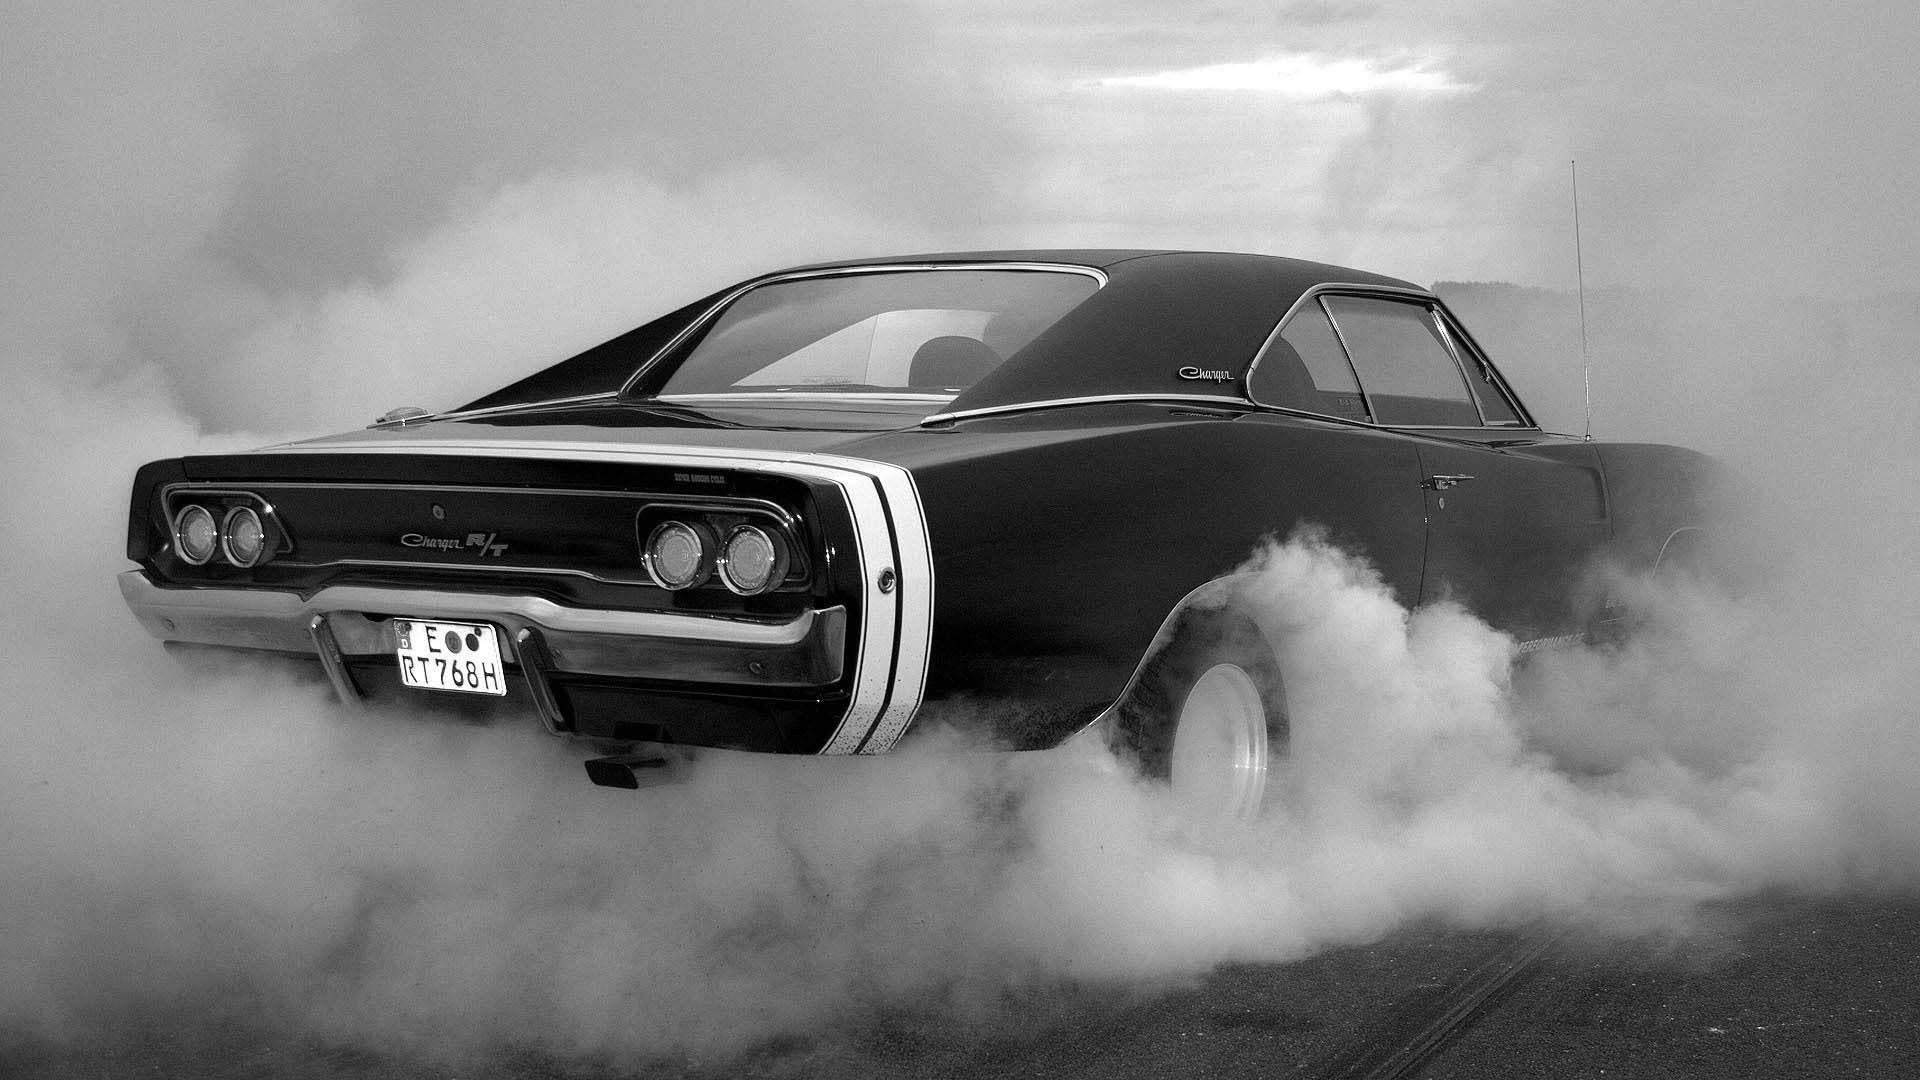 For Your Desktop Summer Hd Wallpaper Top Quality 1920 1080 Full Hd Wallpapers 1920 1080 Free Downl Dodge Charger Rt 1968 Dodge Charger Hot Rods Cars Muscle